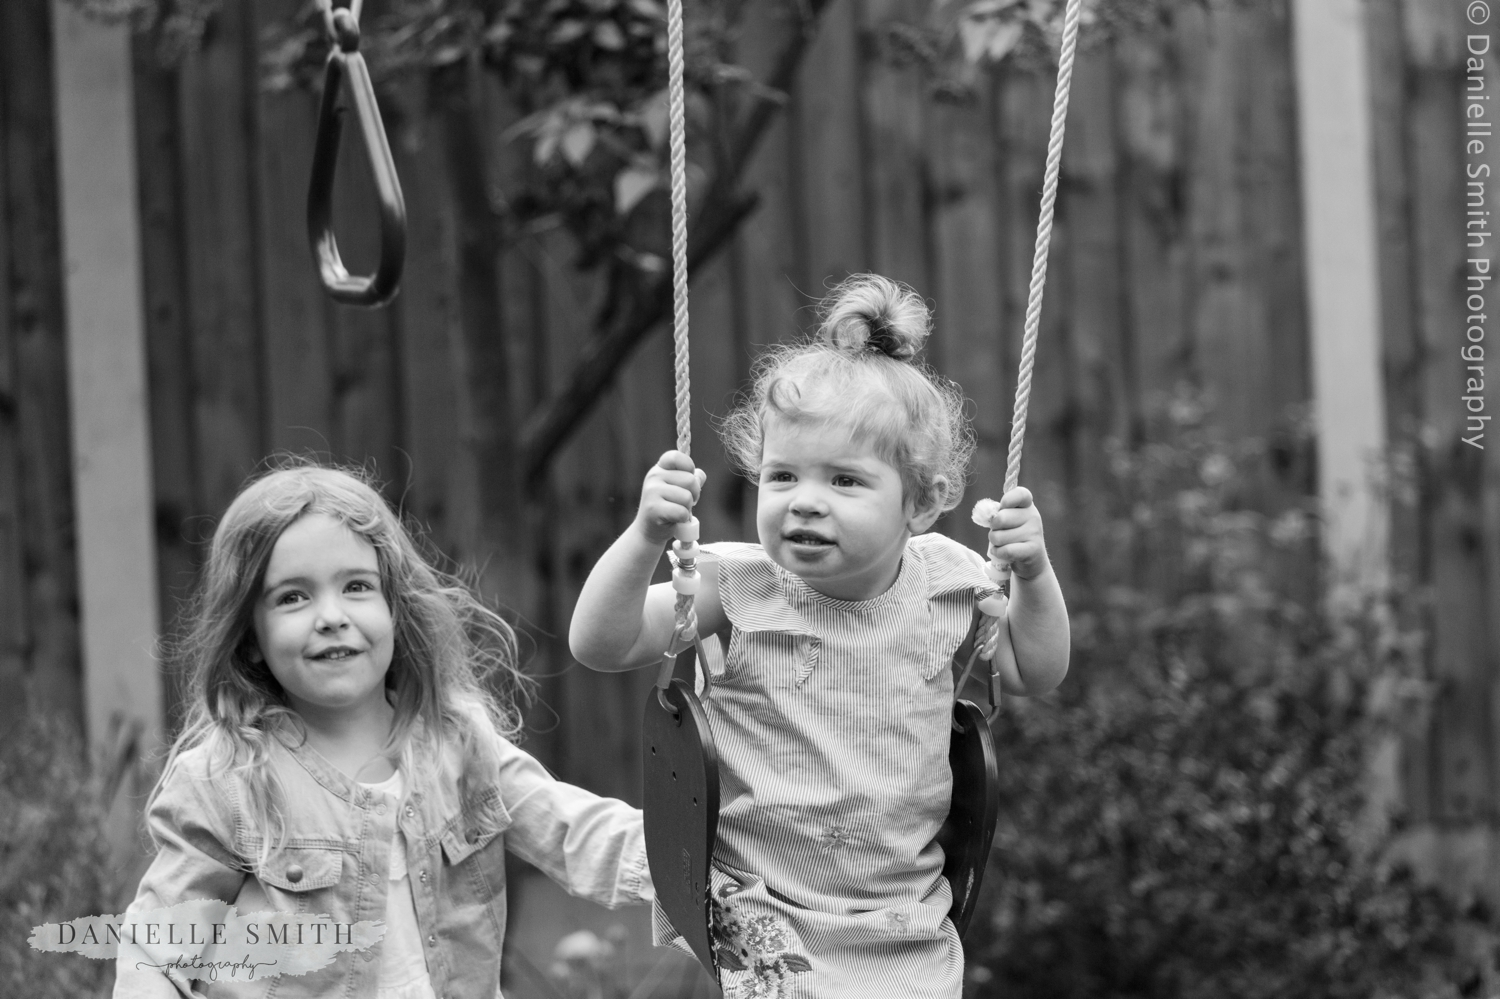 cousins playing on swings together